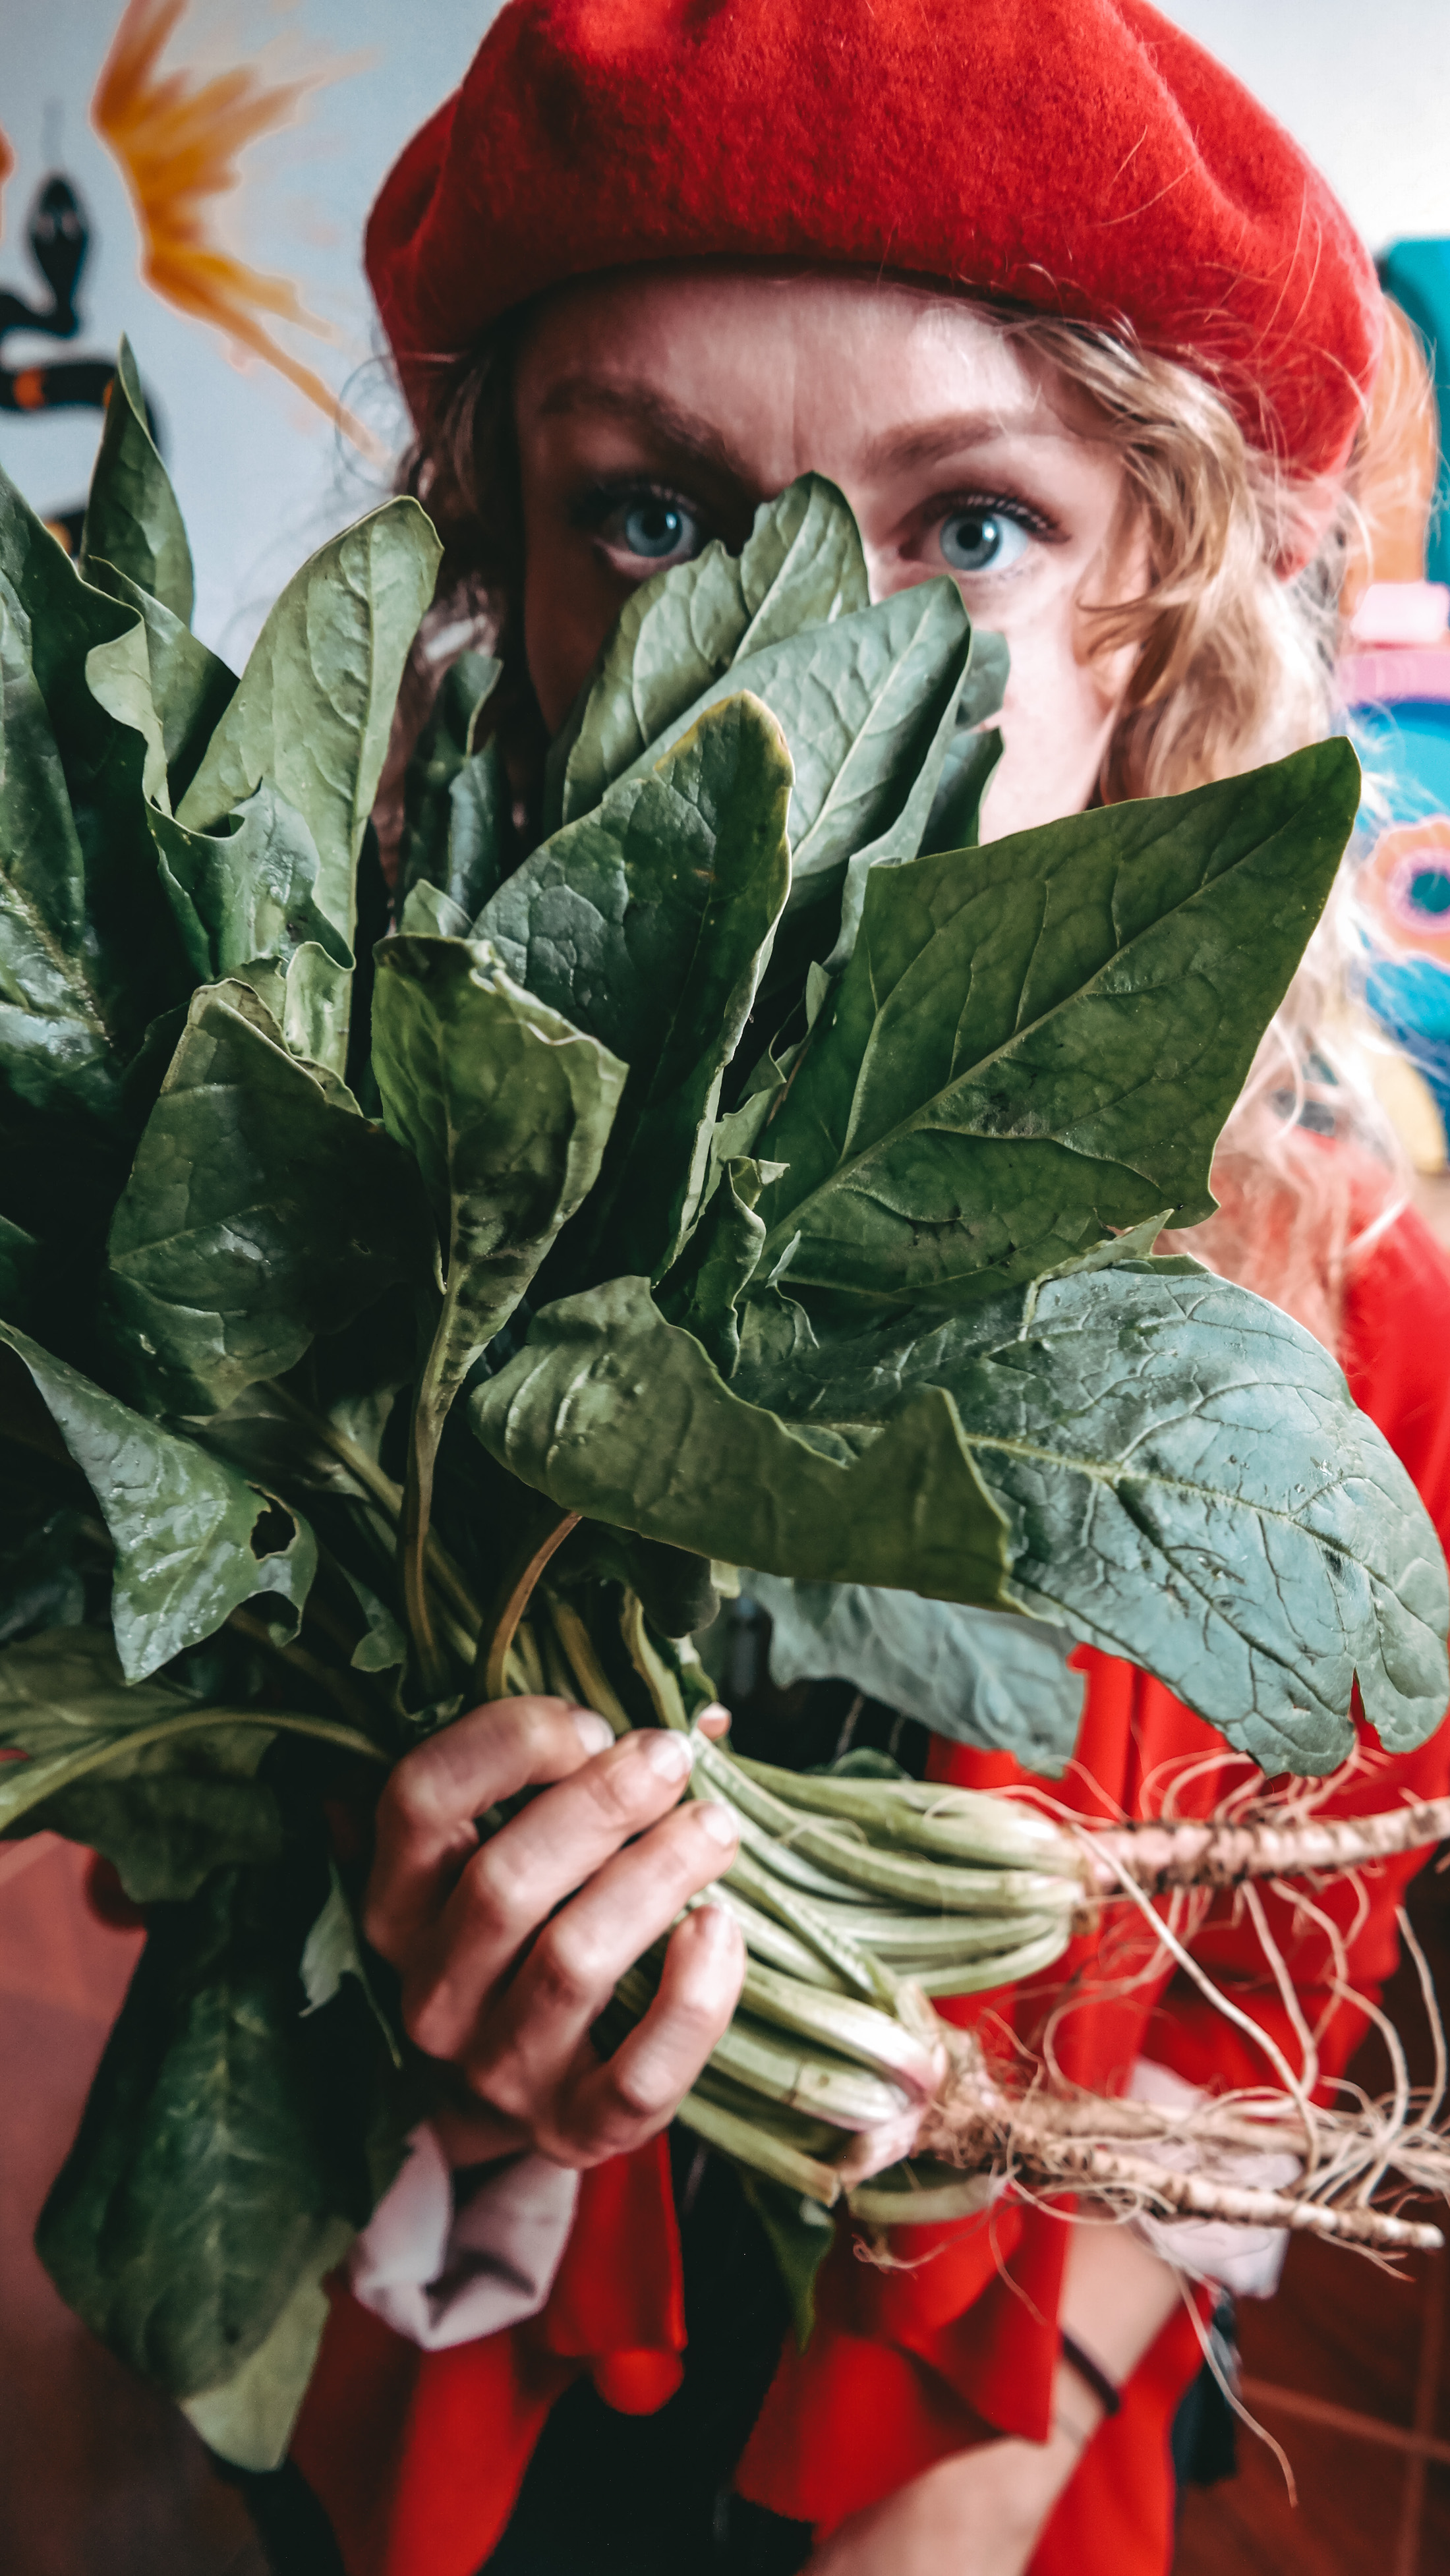 woman in red holding a spinach